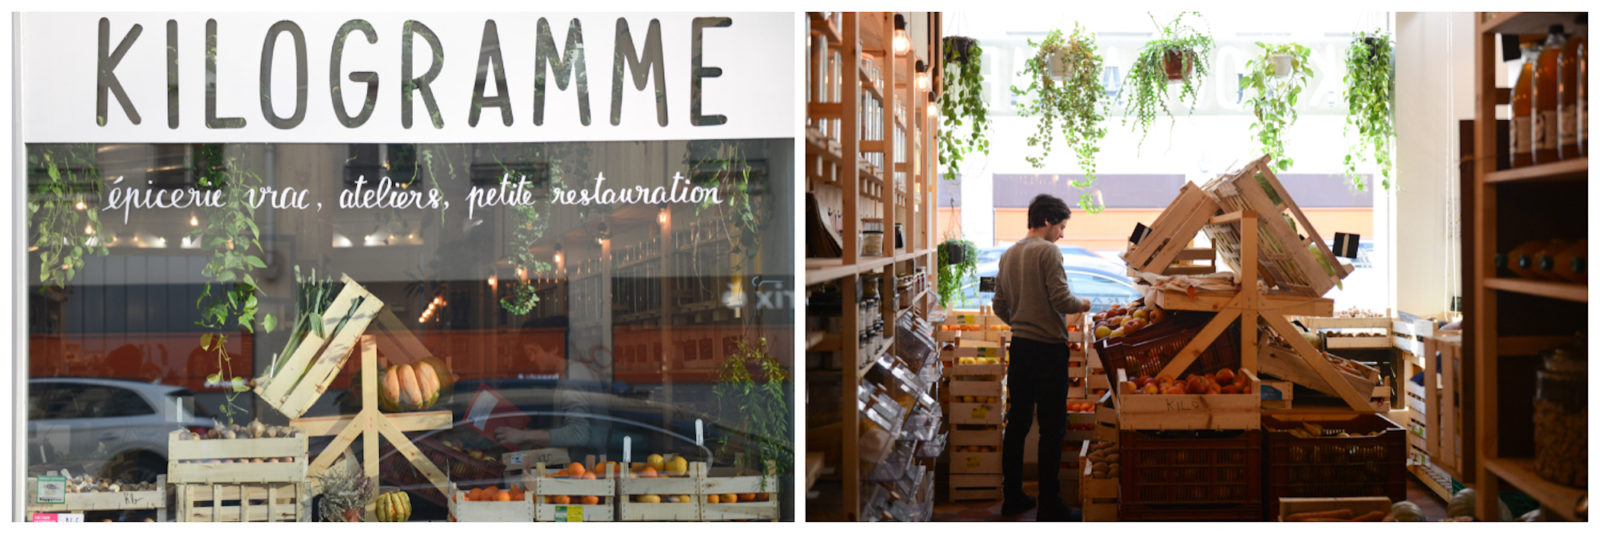 The window of zero-waste store in Paris, L'Epicerie Kilogramme, with wooden crates of fruit (left). Inside L'Epicerie Kilogramme, with wooden crates of fruit and vegetables in the centre and food products on the shelves (right).